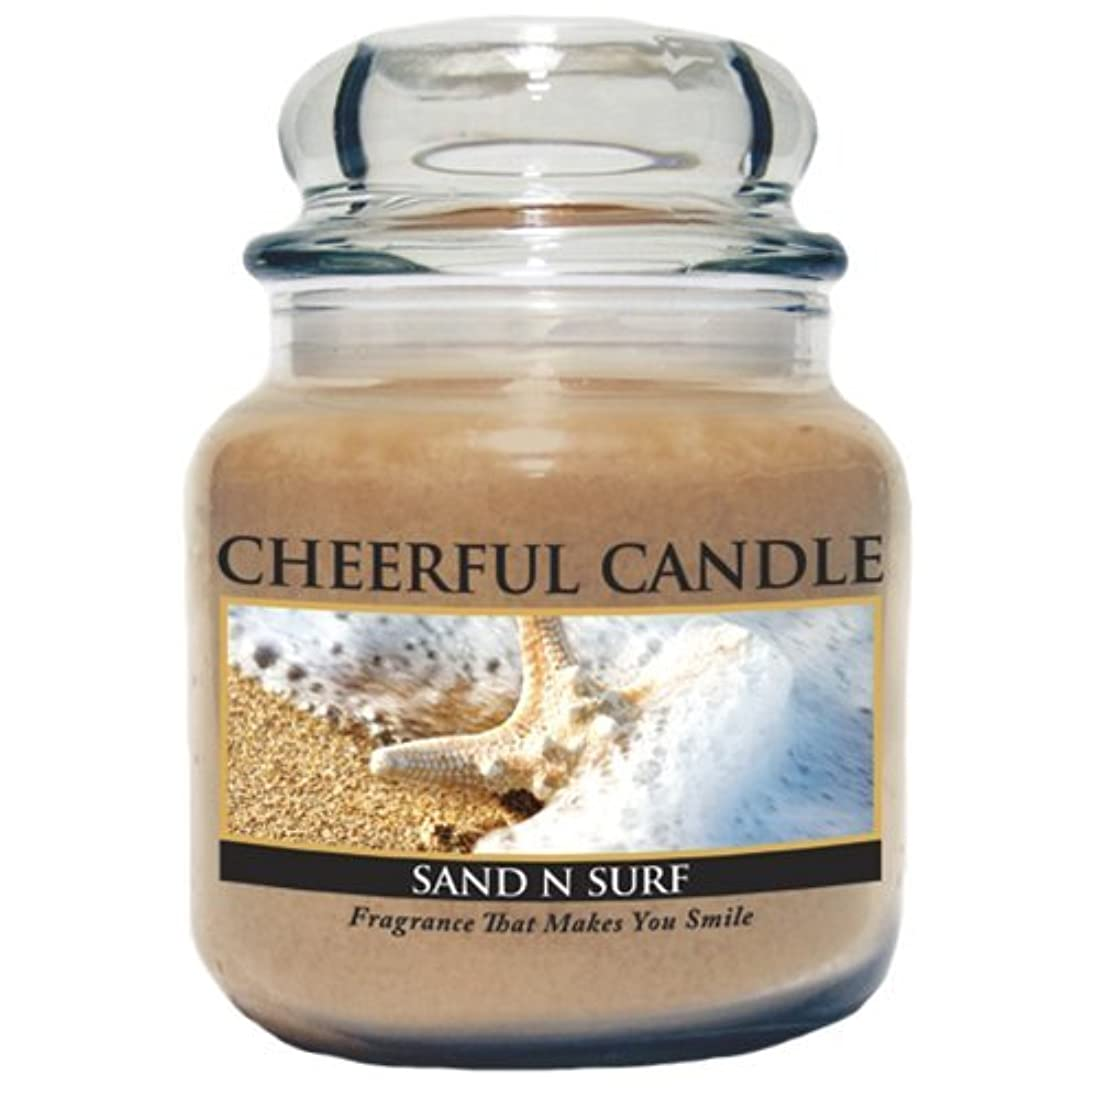 ブースト多分誤解を招くA Cheerful Giver Sand and Surf Jar Candle, 24-Ounce by Cheerful Giver [並行輸入品]